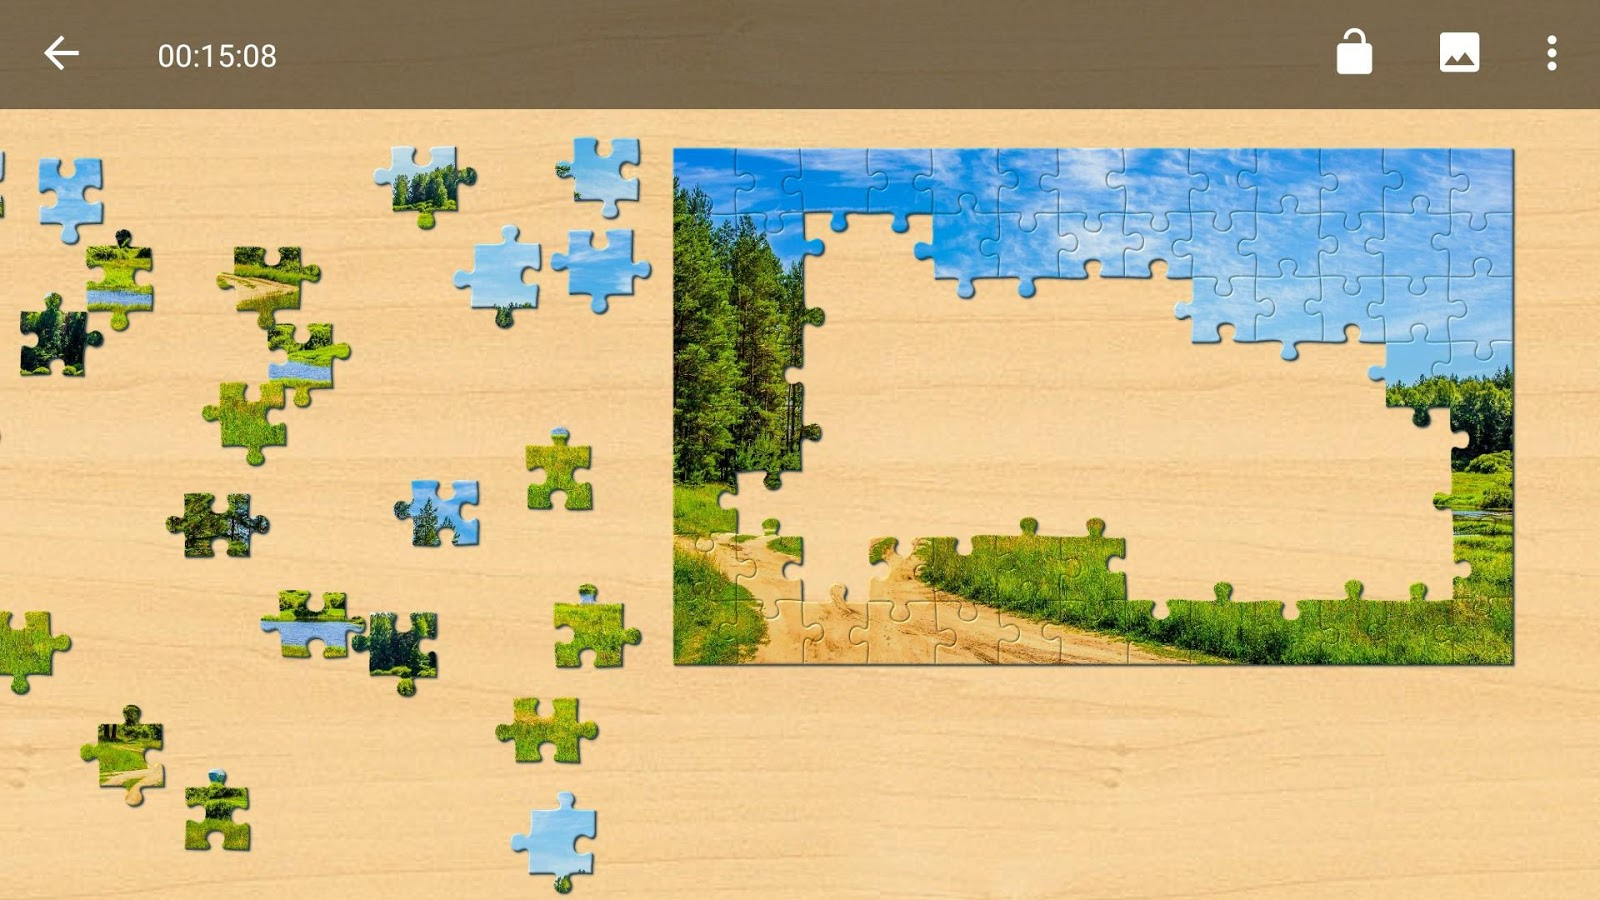 Landscapes Jigsaw Puzzles - Android Apps on Google Play